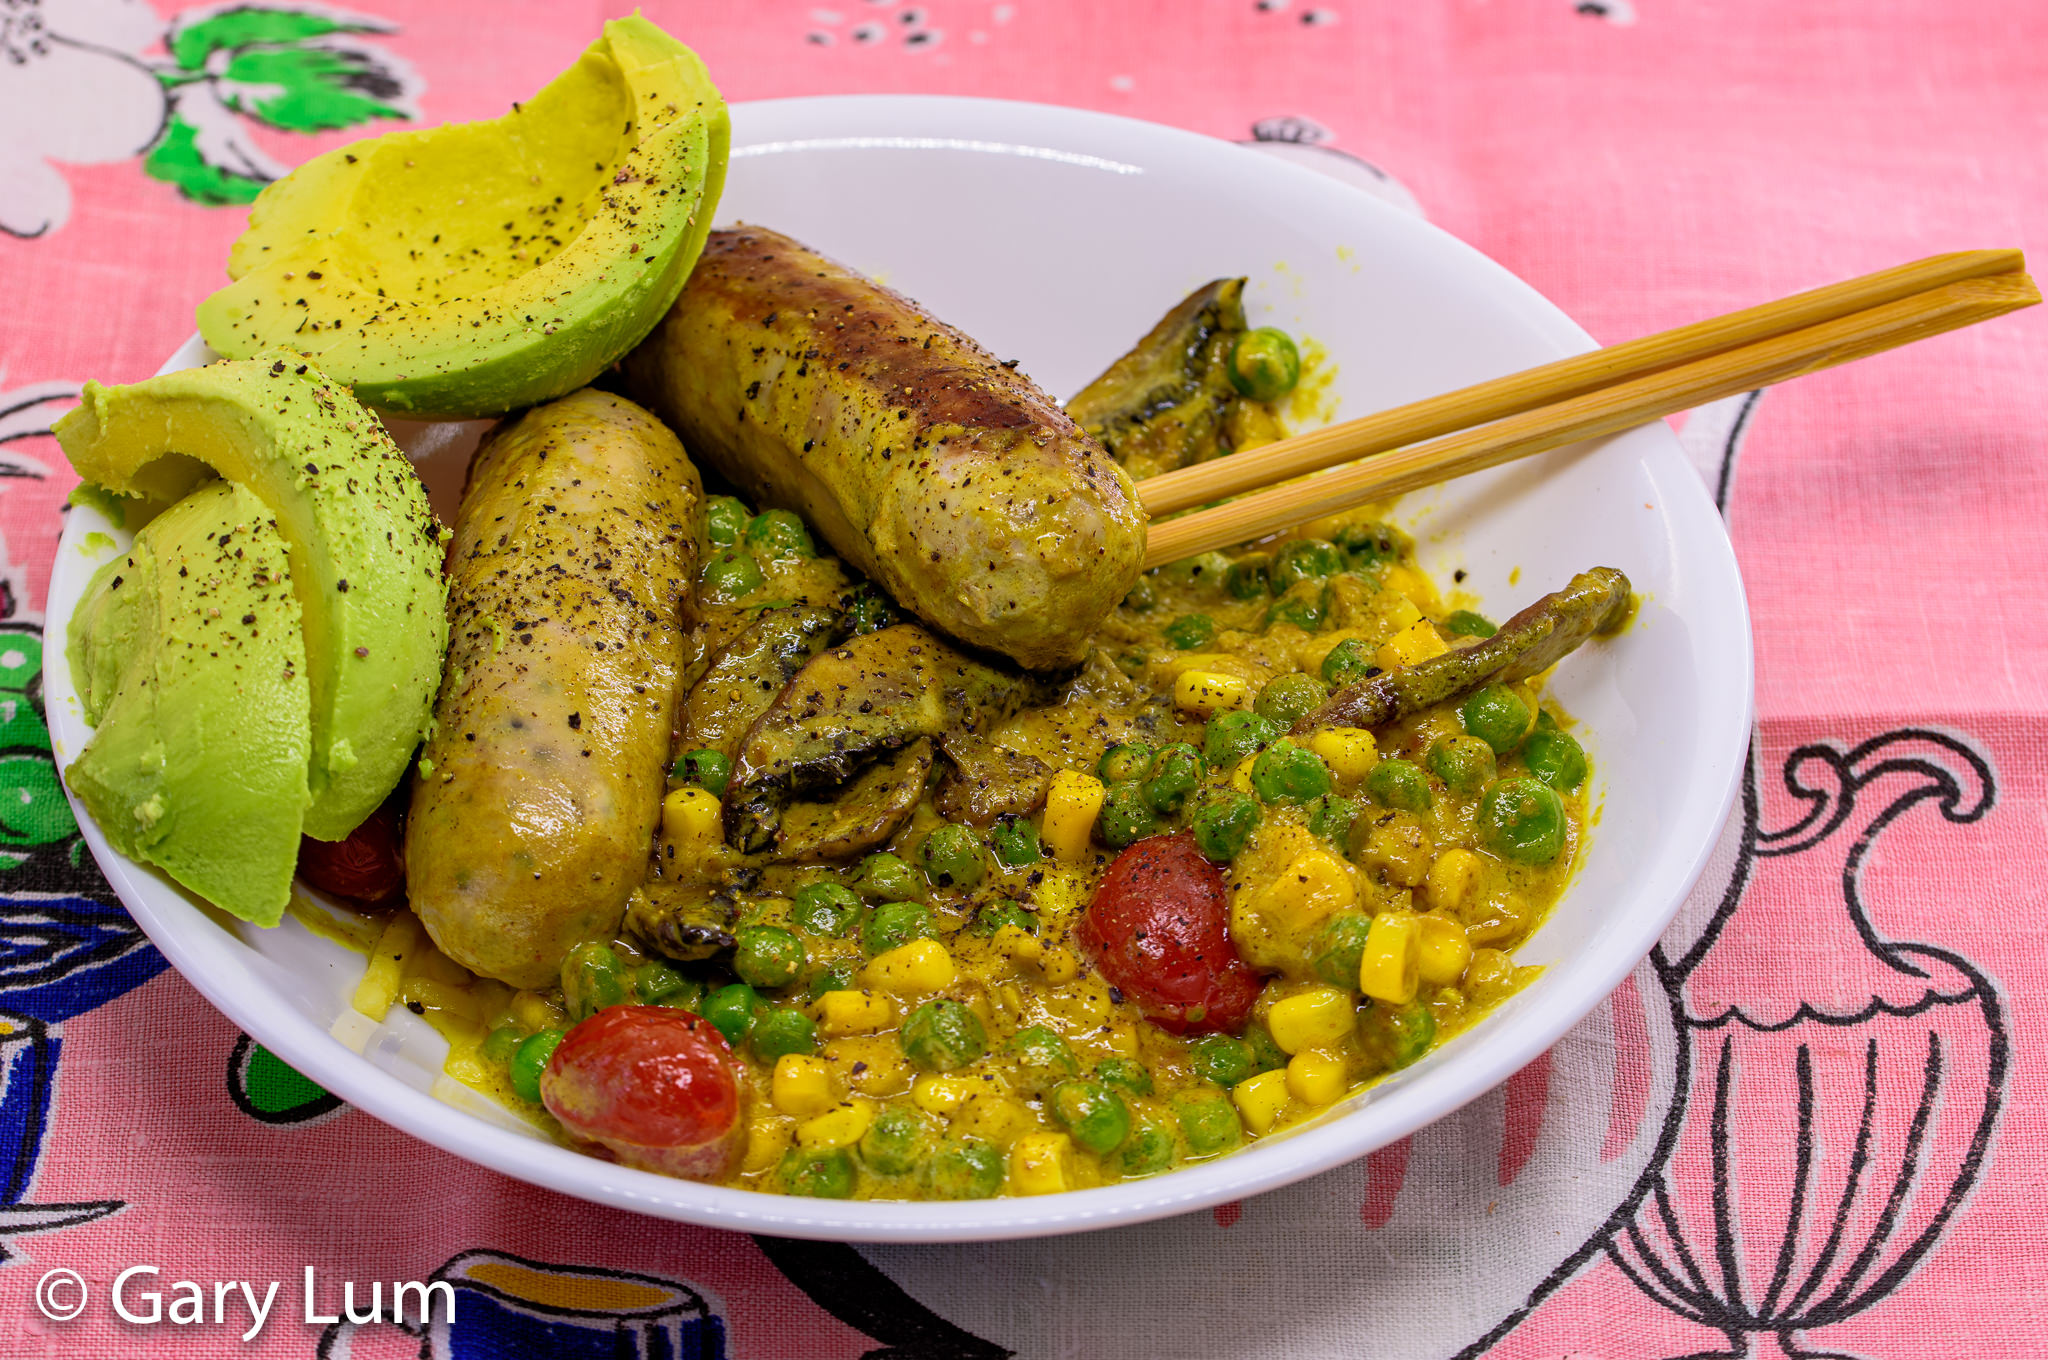 Curry pork sausages with coconut cream mushroom peas corn cherry tomatoes and an avocado. Gary Lum.